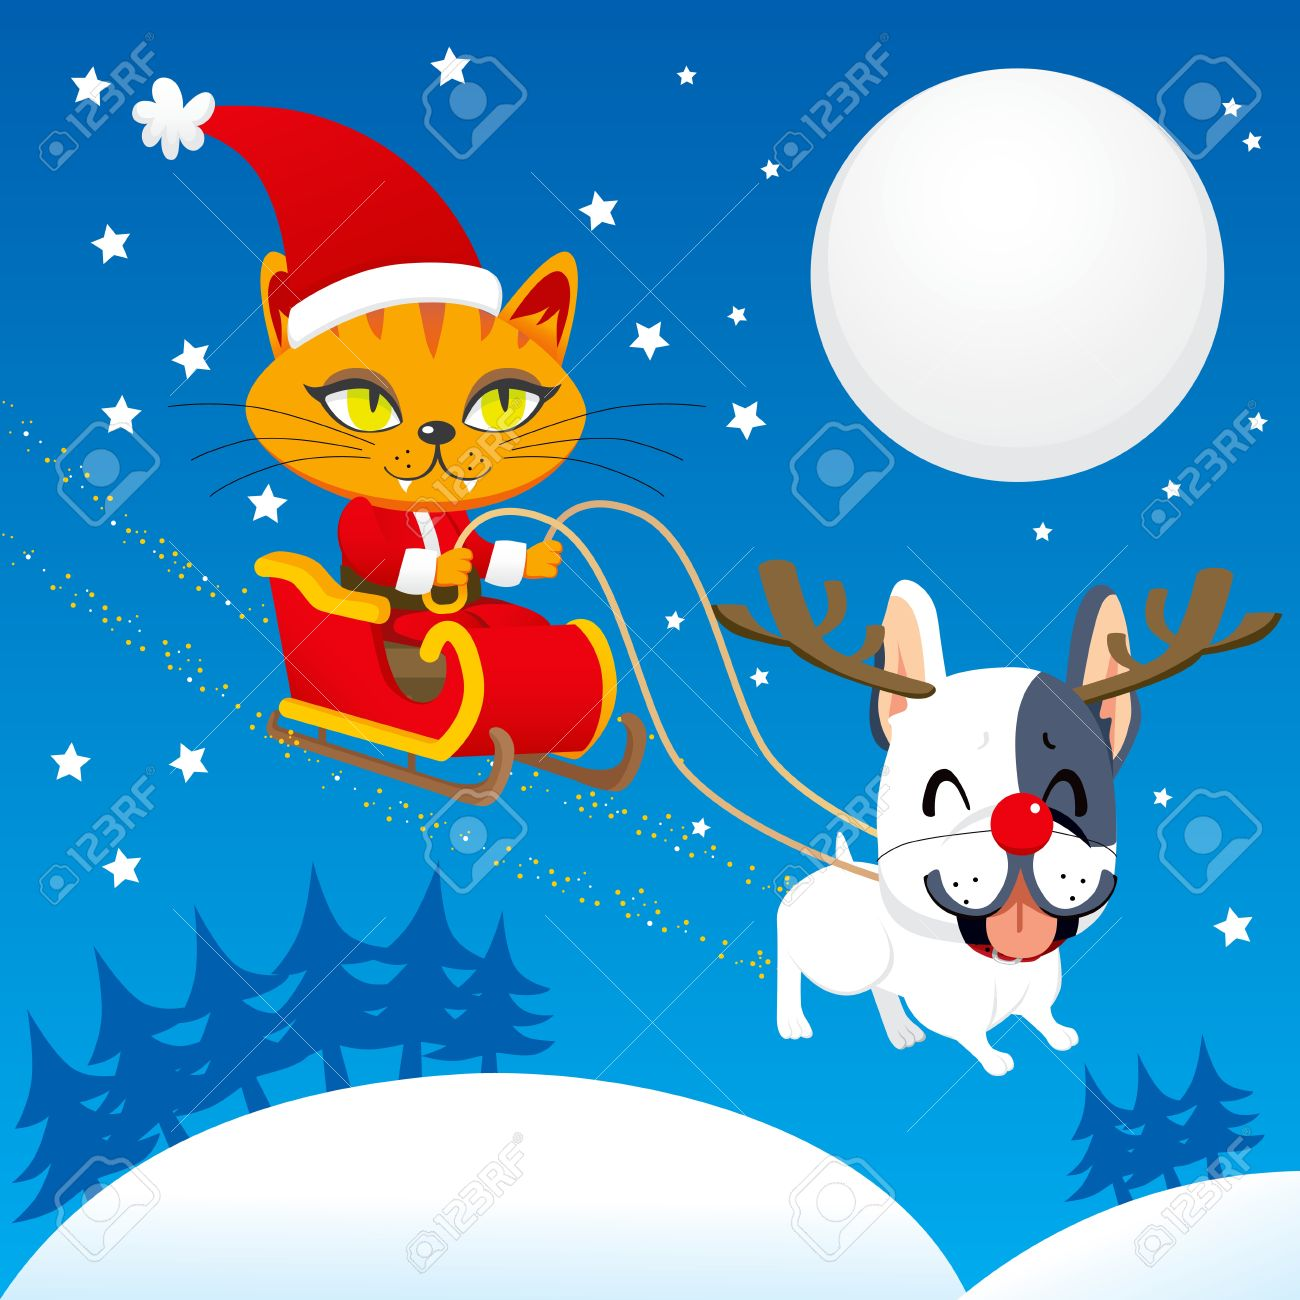 Santa Claus cat riding his magical flying sleigh with Rudolph the red nosed french bulldog reindeer Stock Vector - 11272591